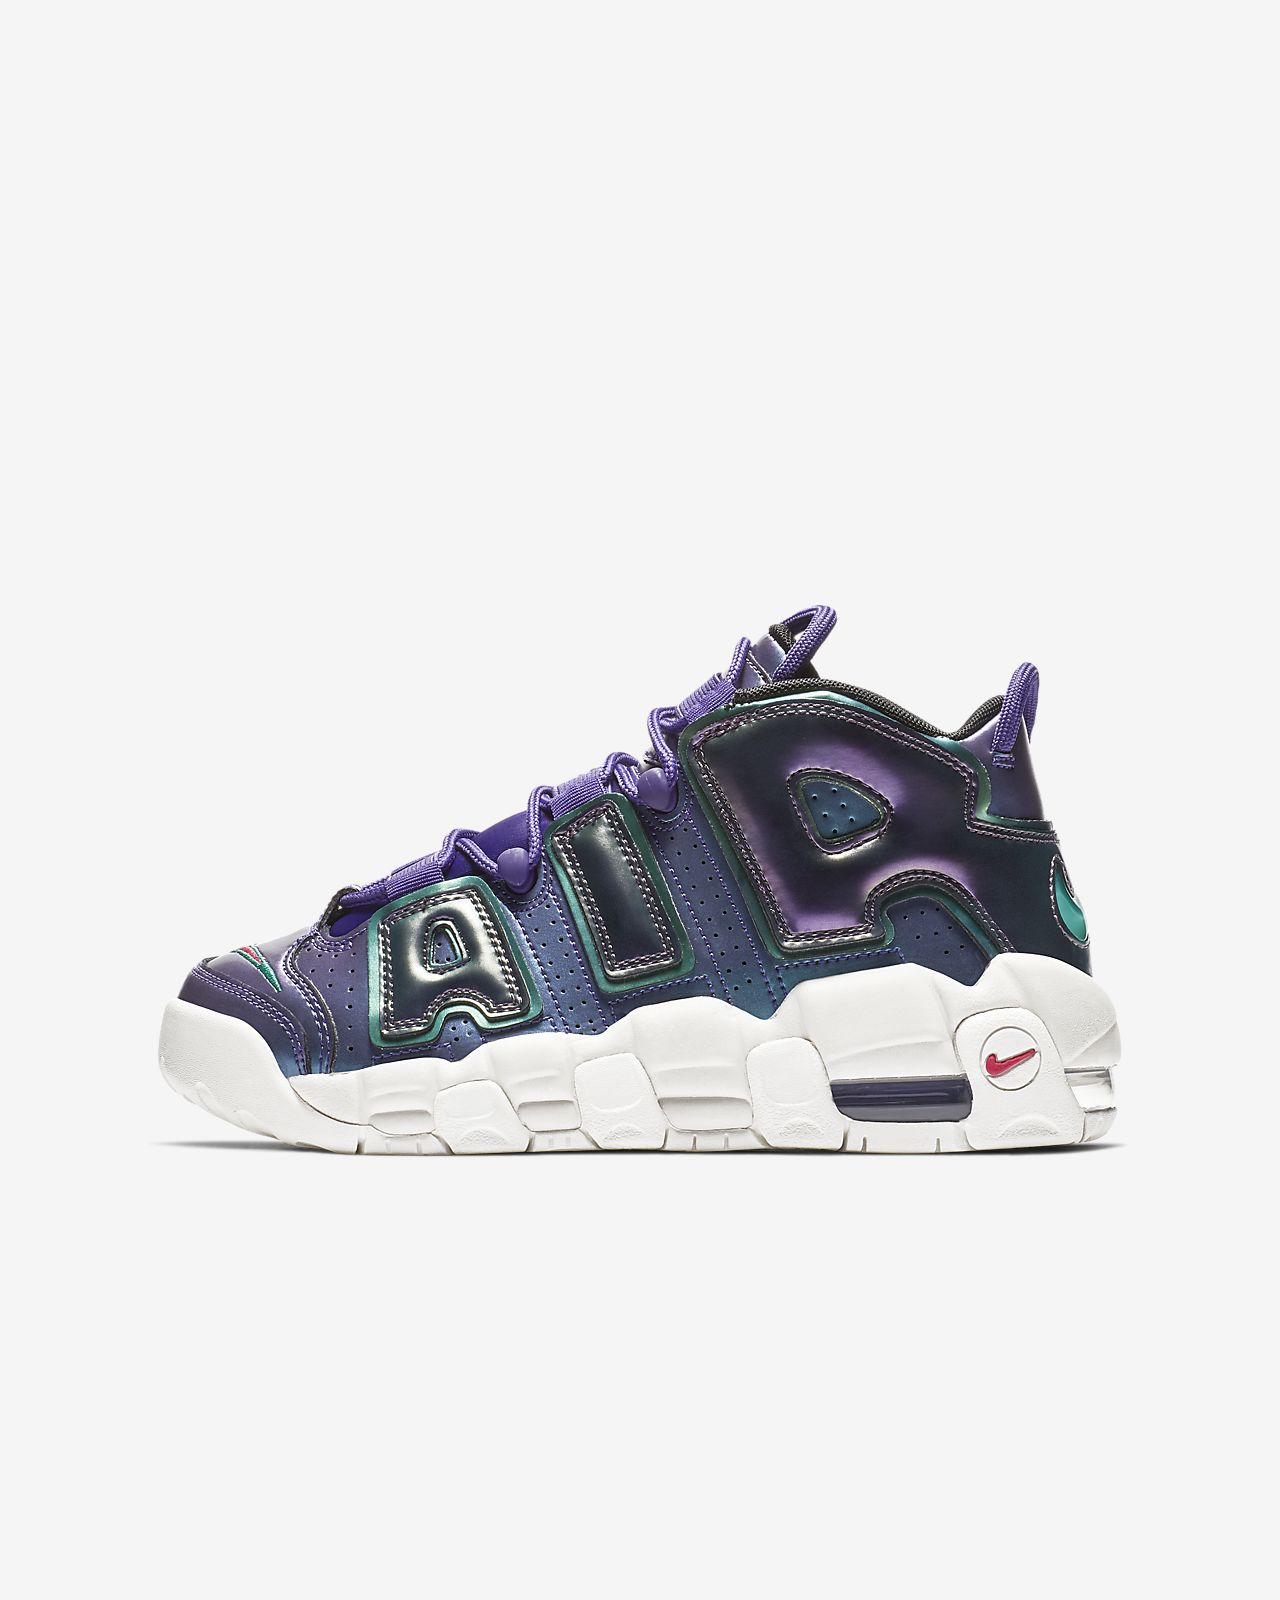 Nike Air More Uptempo SE Big Kids' Shoe